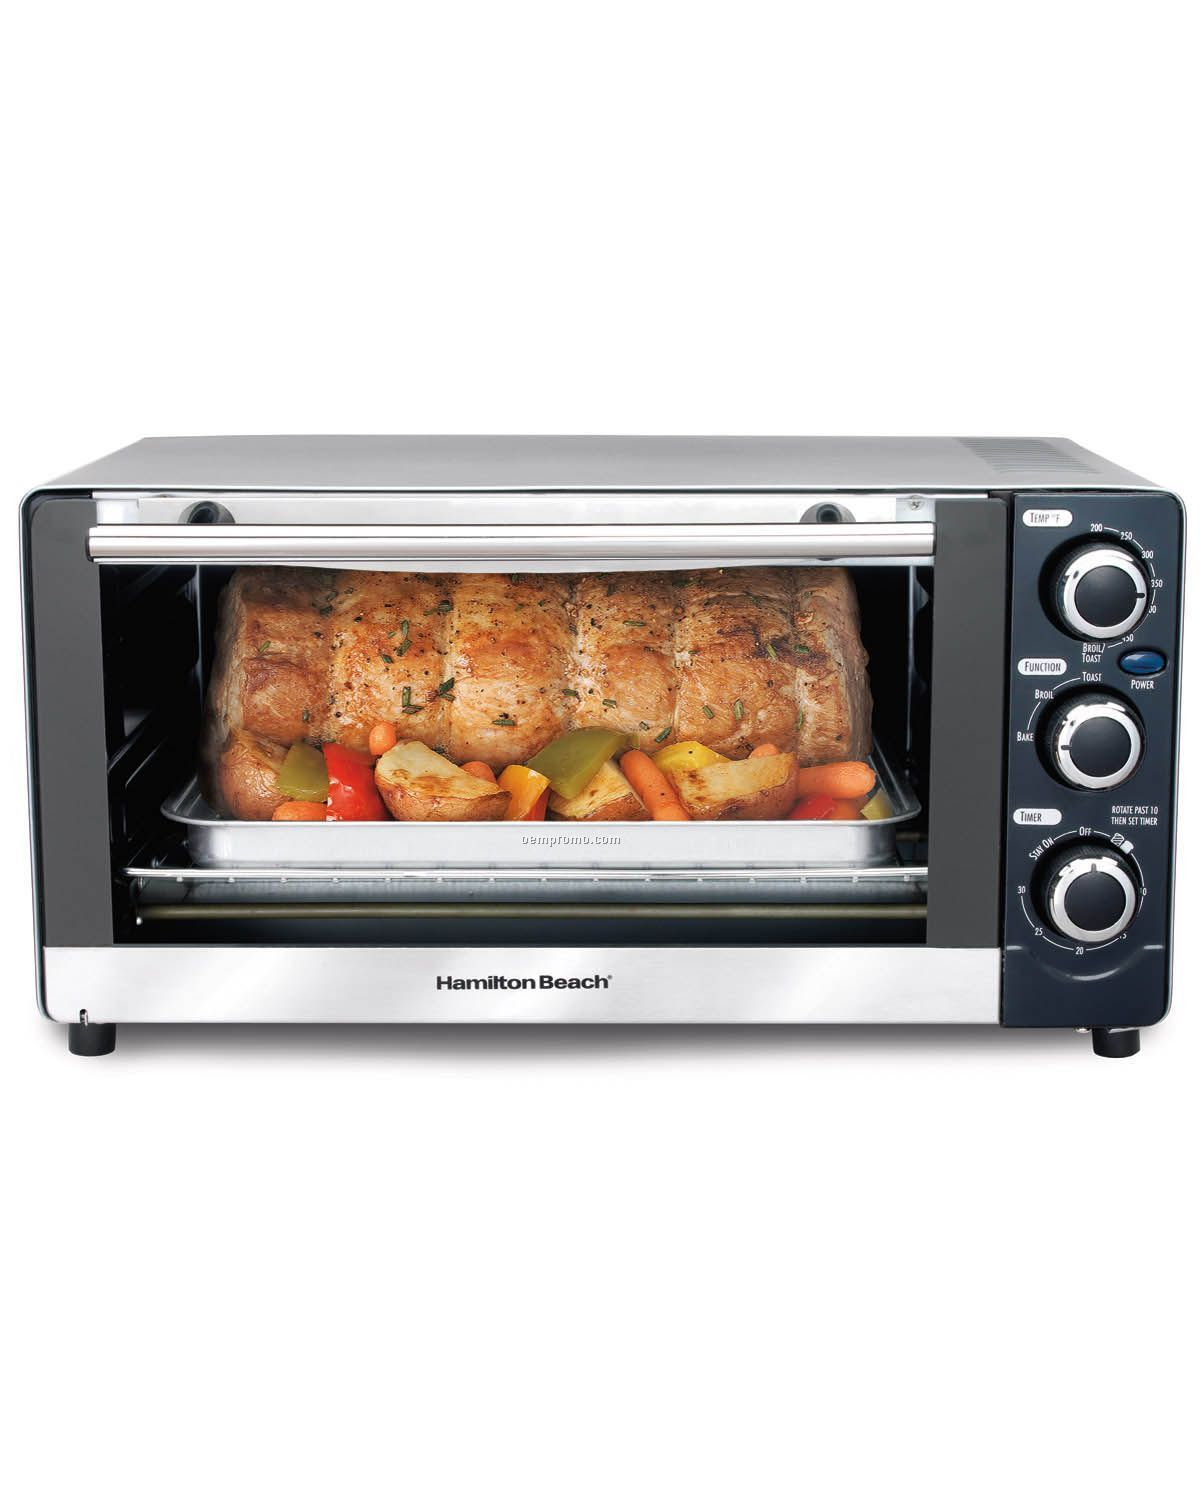 Hamilton Beach 6 Slice Toaster Oven China Wholesale